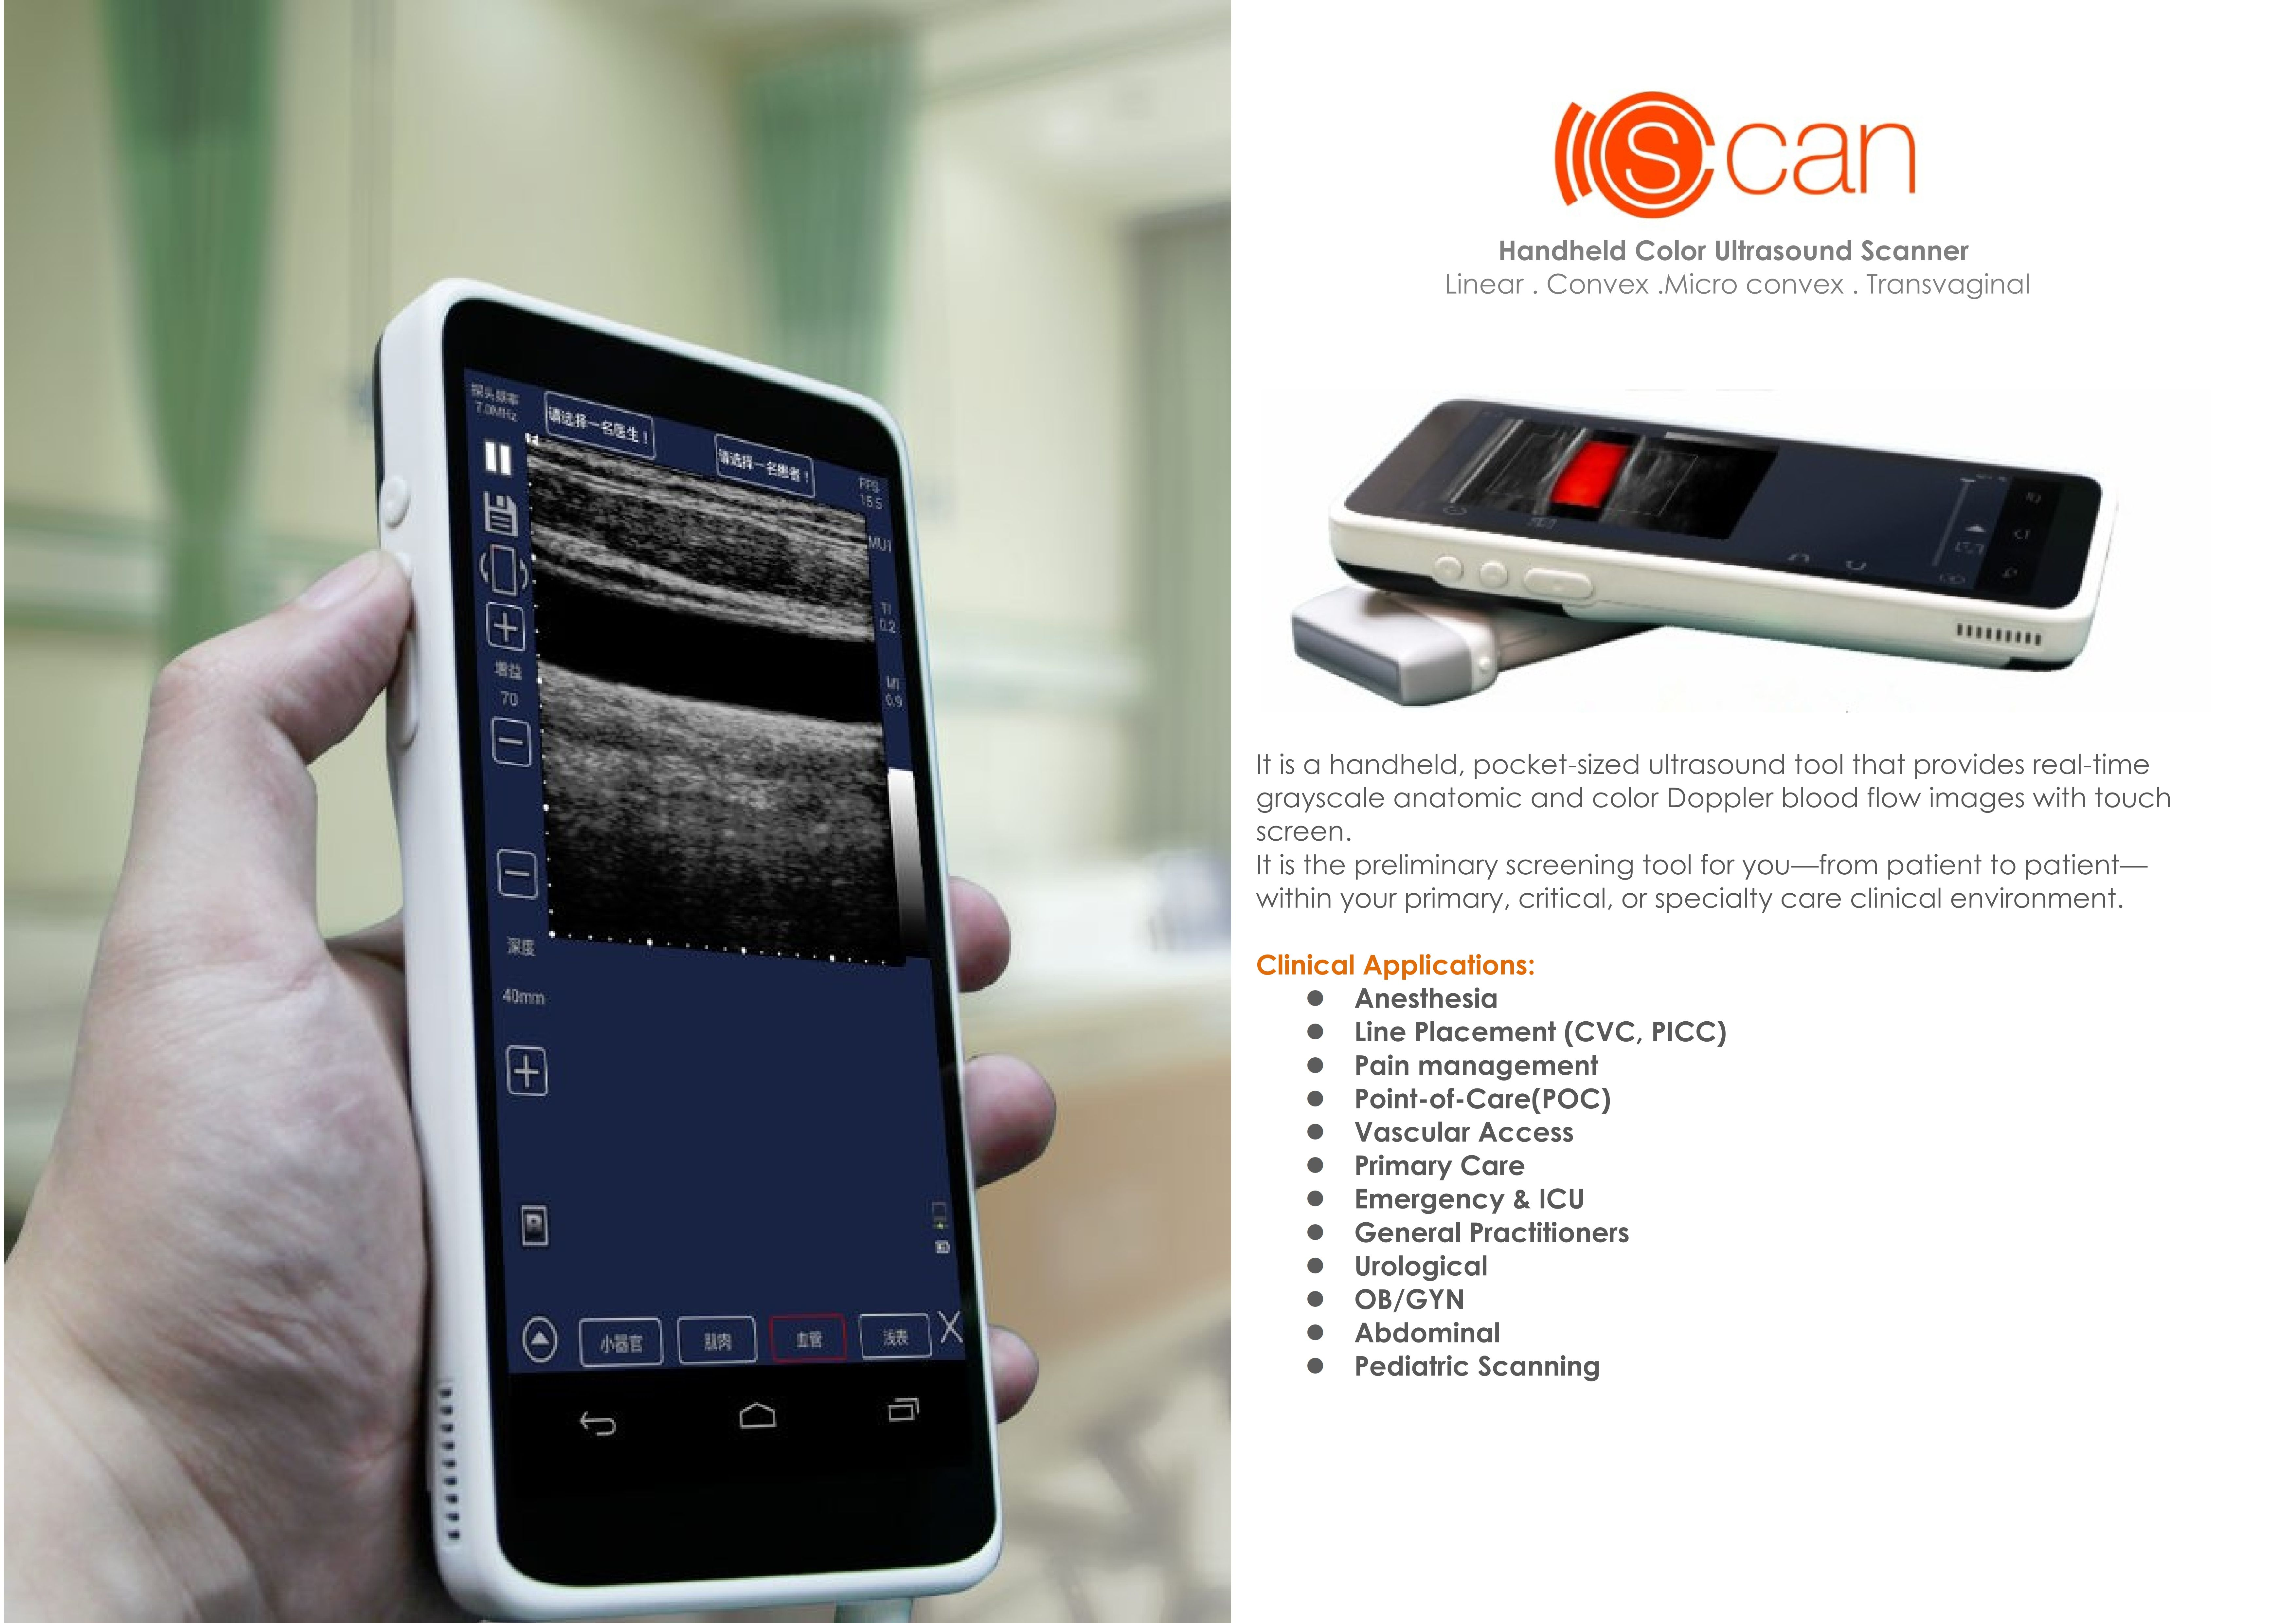 C-Scan is a handheld, pocket-sized ultrasound tool that